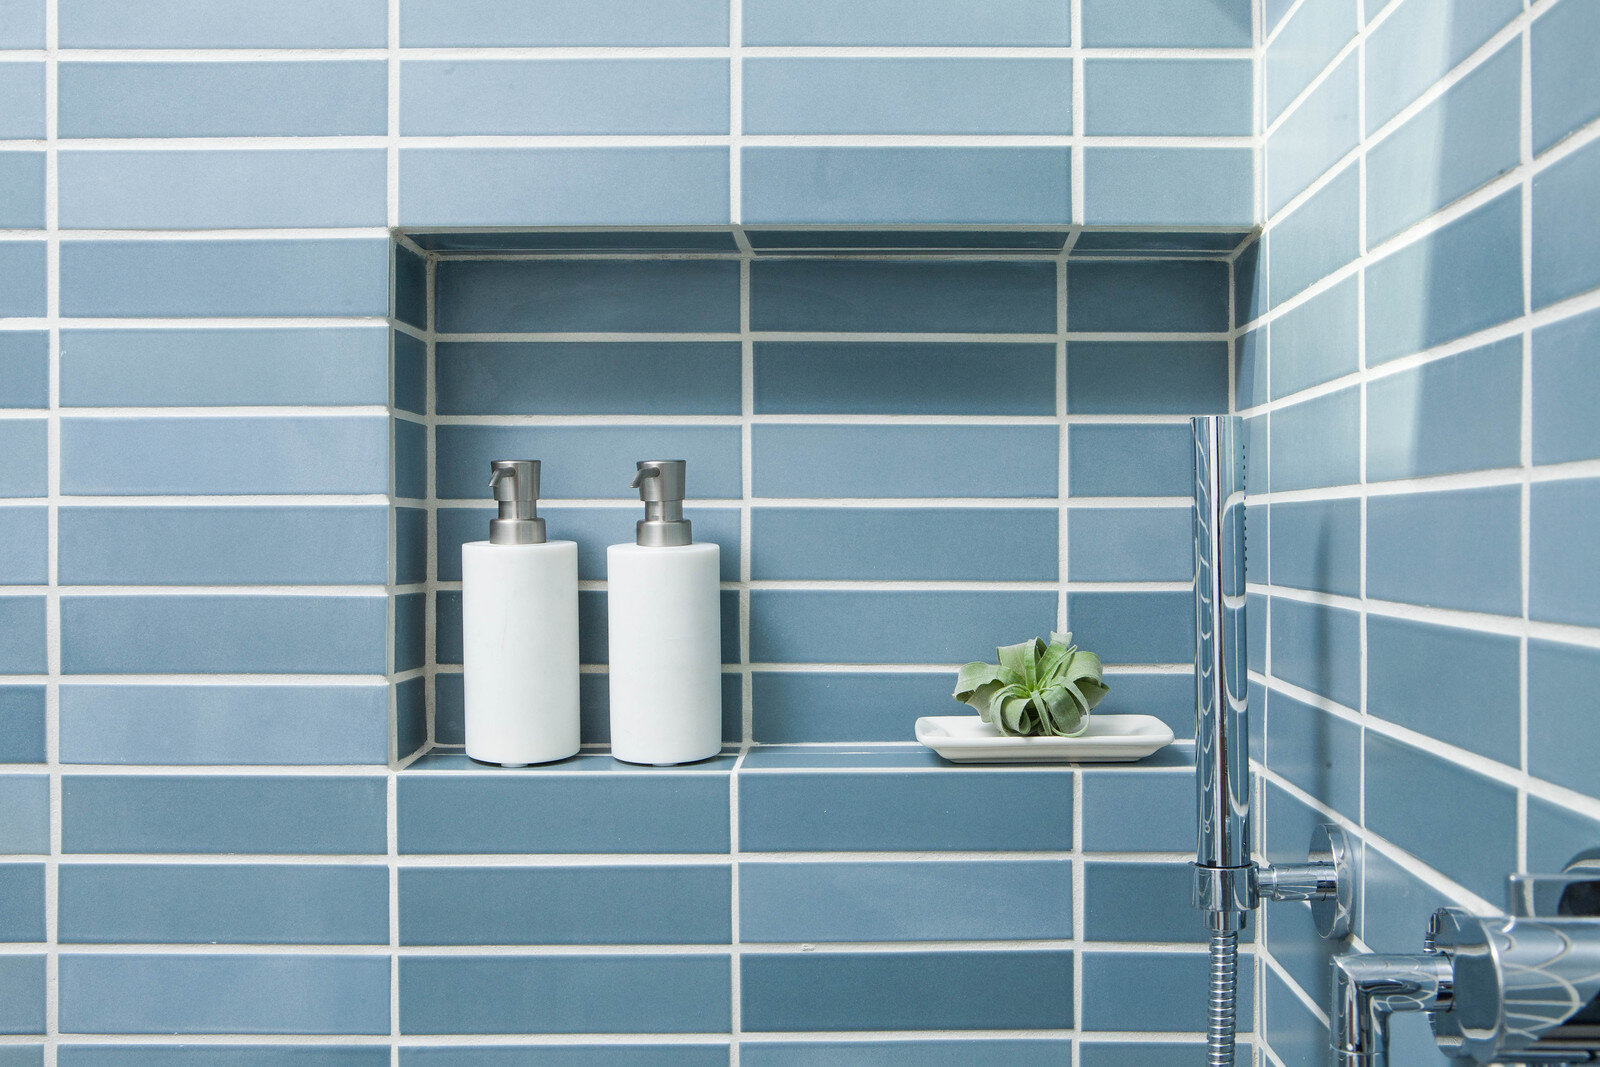 eichler-heath-ceramics-shower-niche.jpg